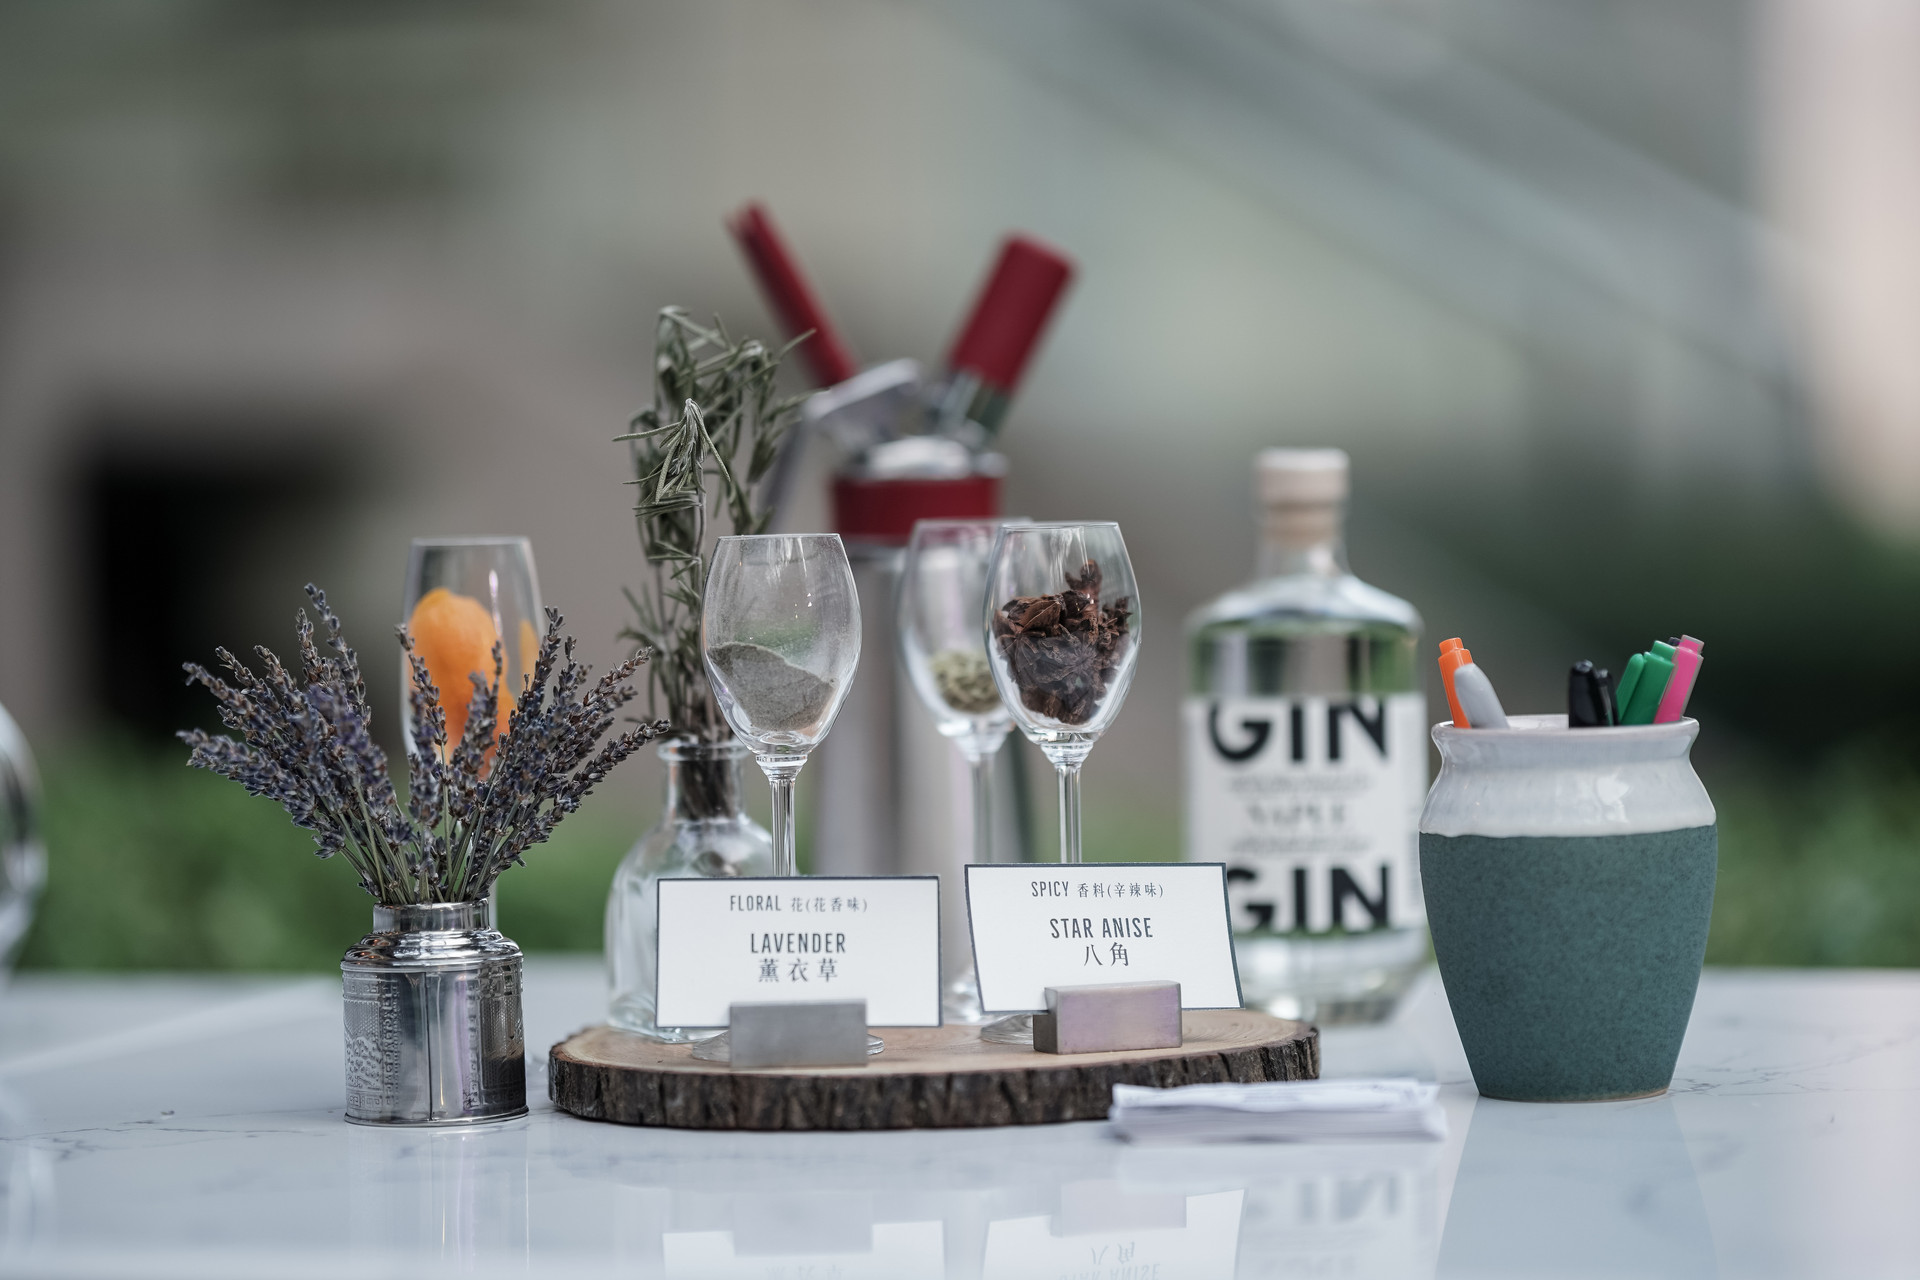 Gin infused with tea display with glasses